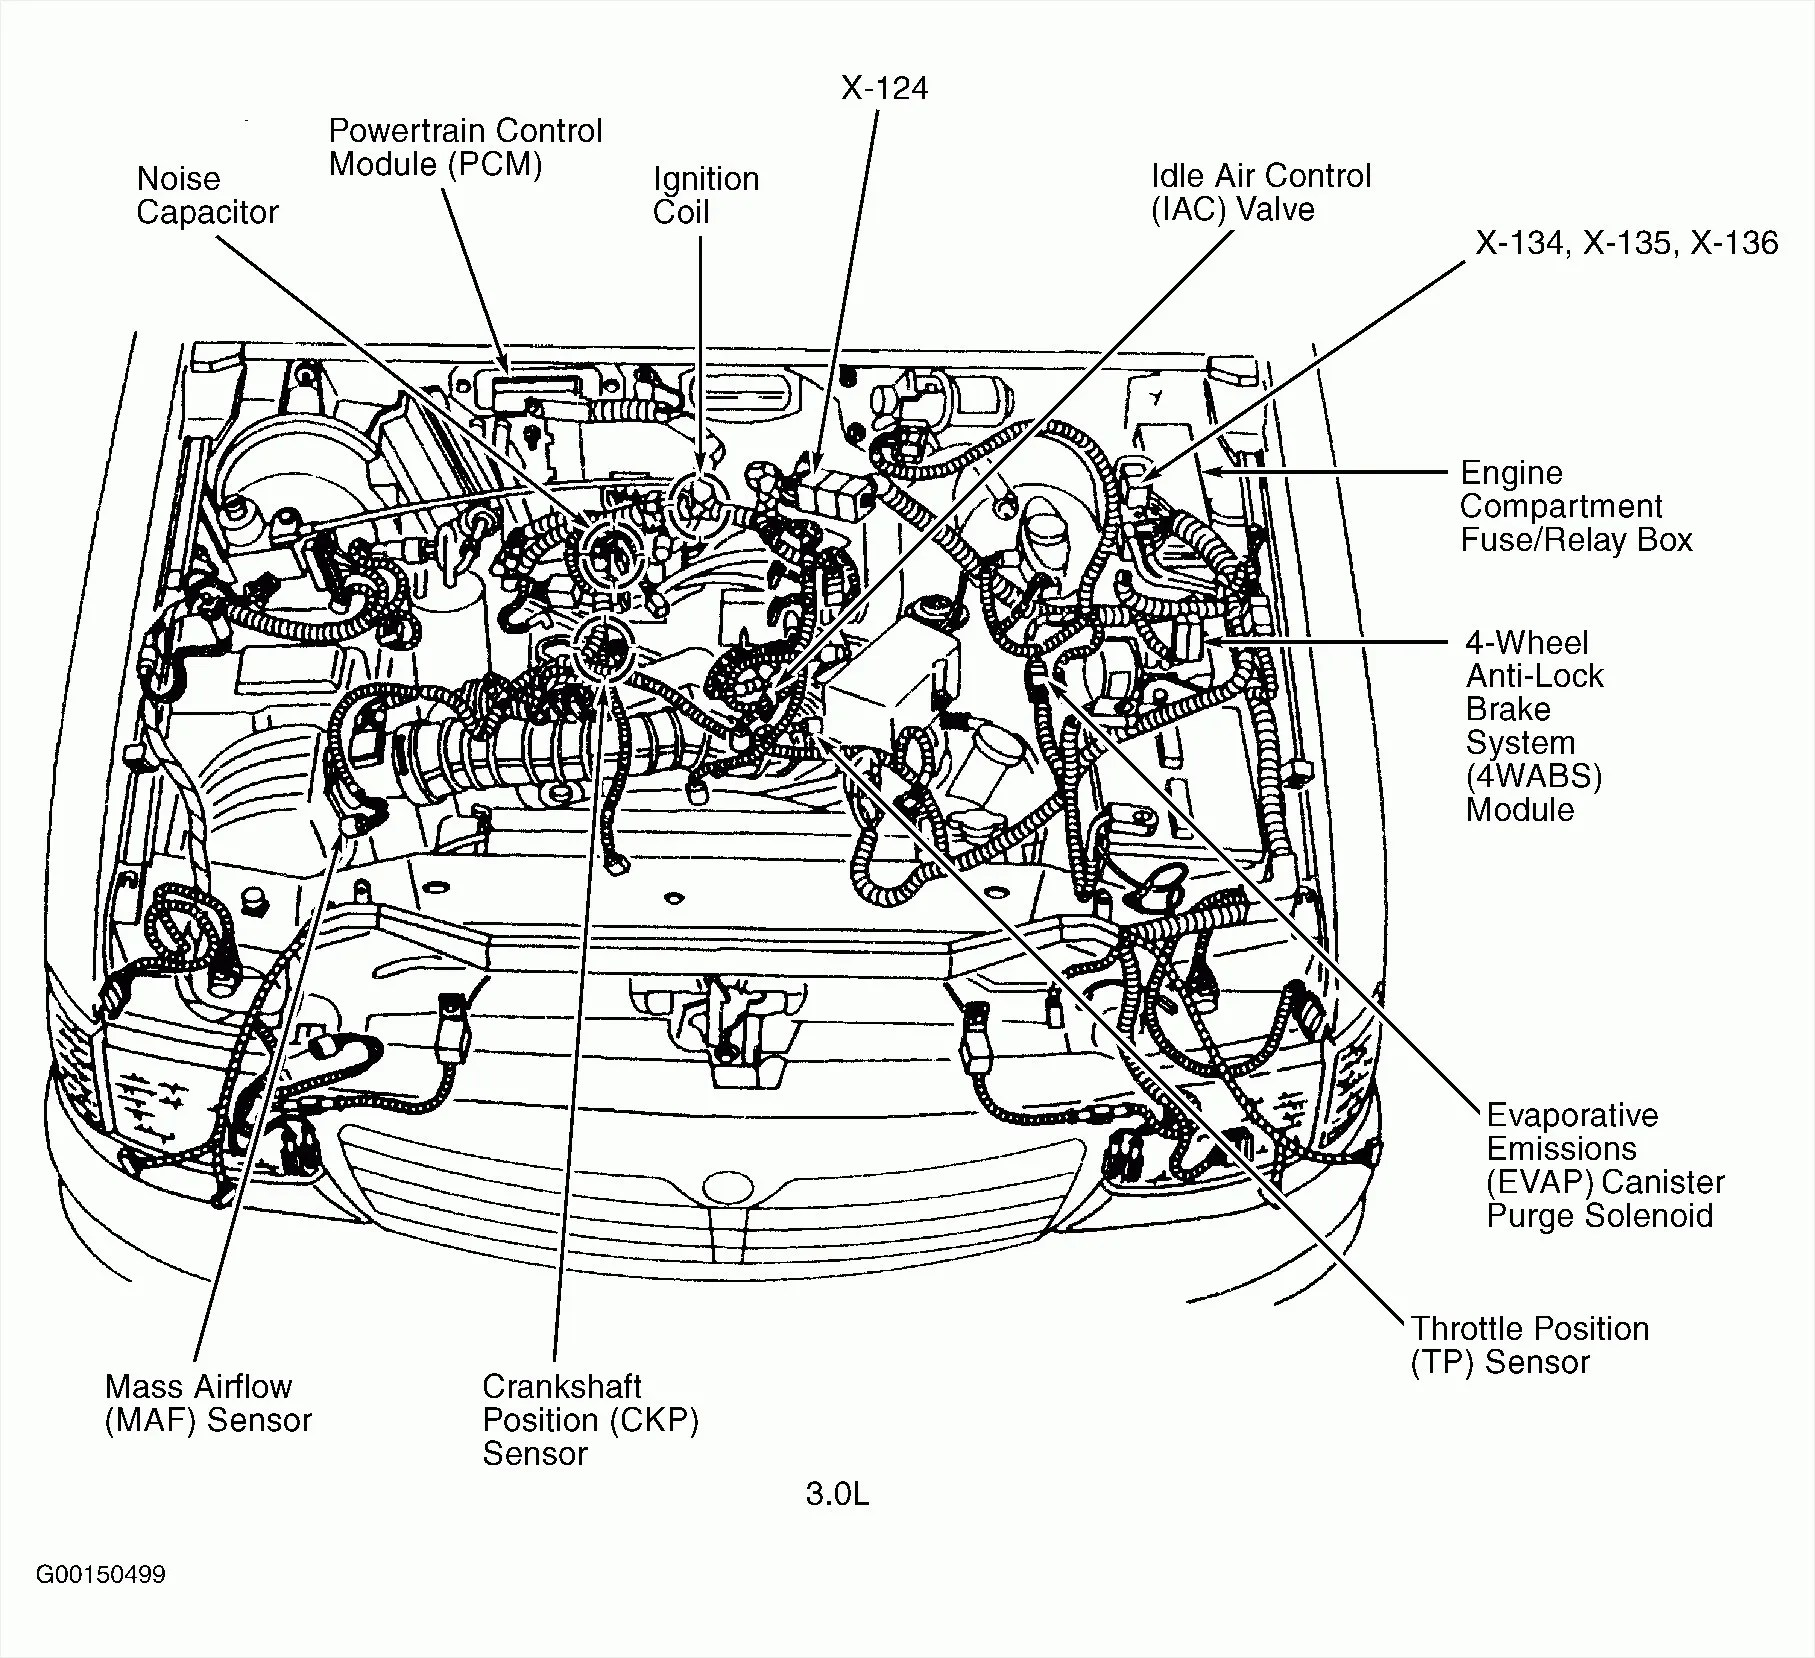 hight resolution of 1999 honda accord fuse diagram wiring diagram paper 1999 honda accord engine parts diagram 1999 honda accord engine diagram